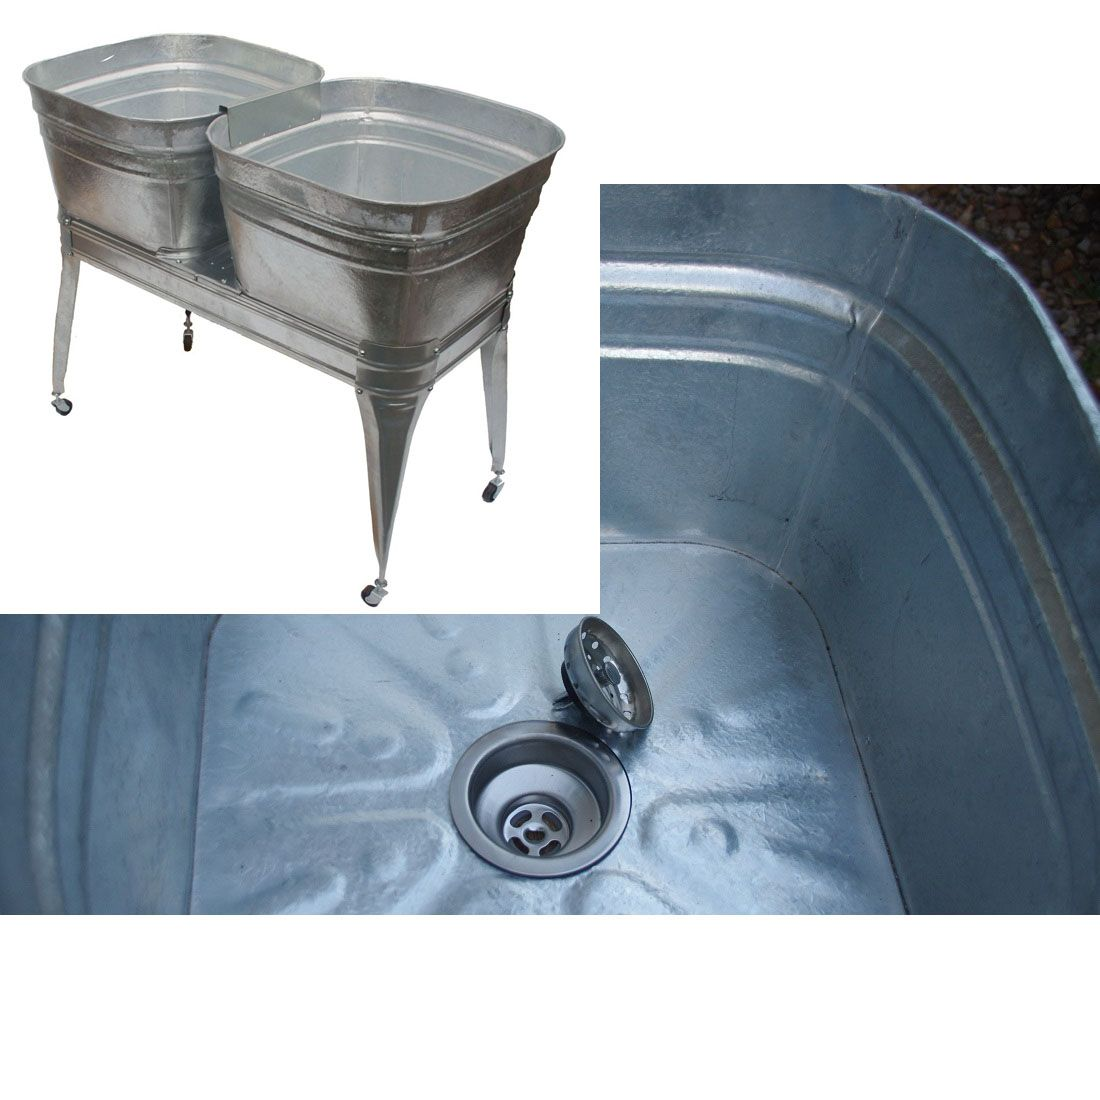 Square Wash Tub With Stand Single Or Double Wash Tubs Wash Tub Sink Galvanized Wash Tub